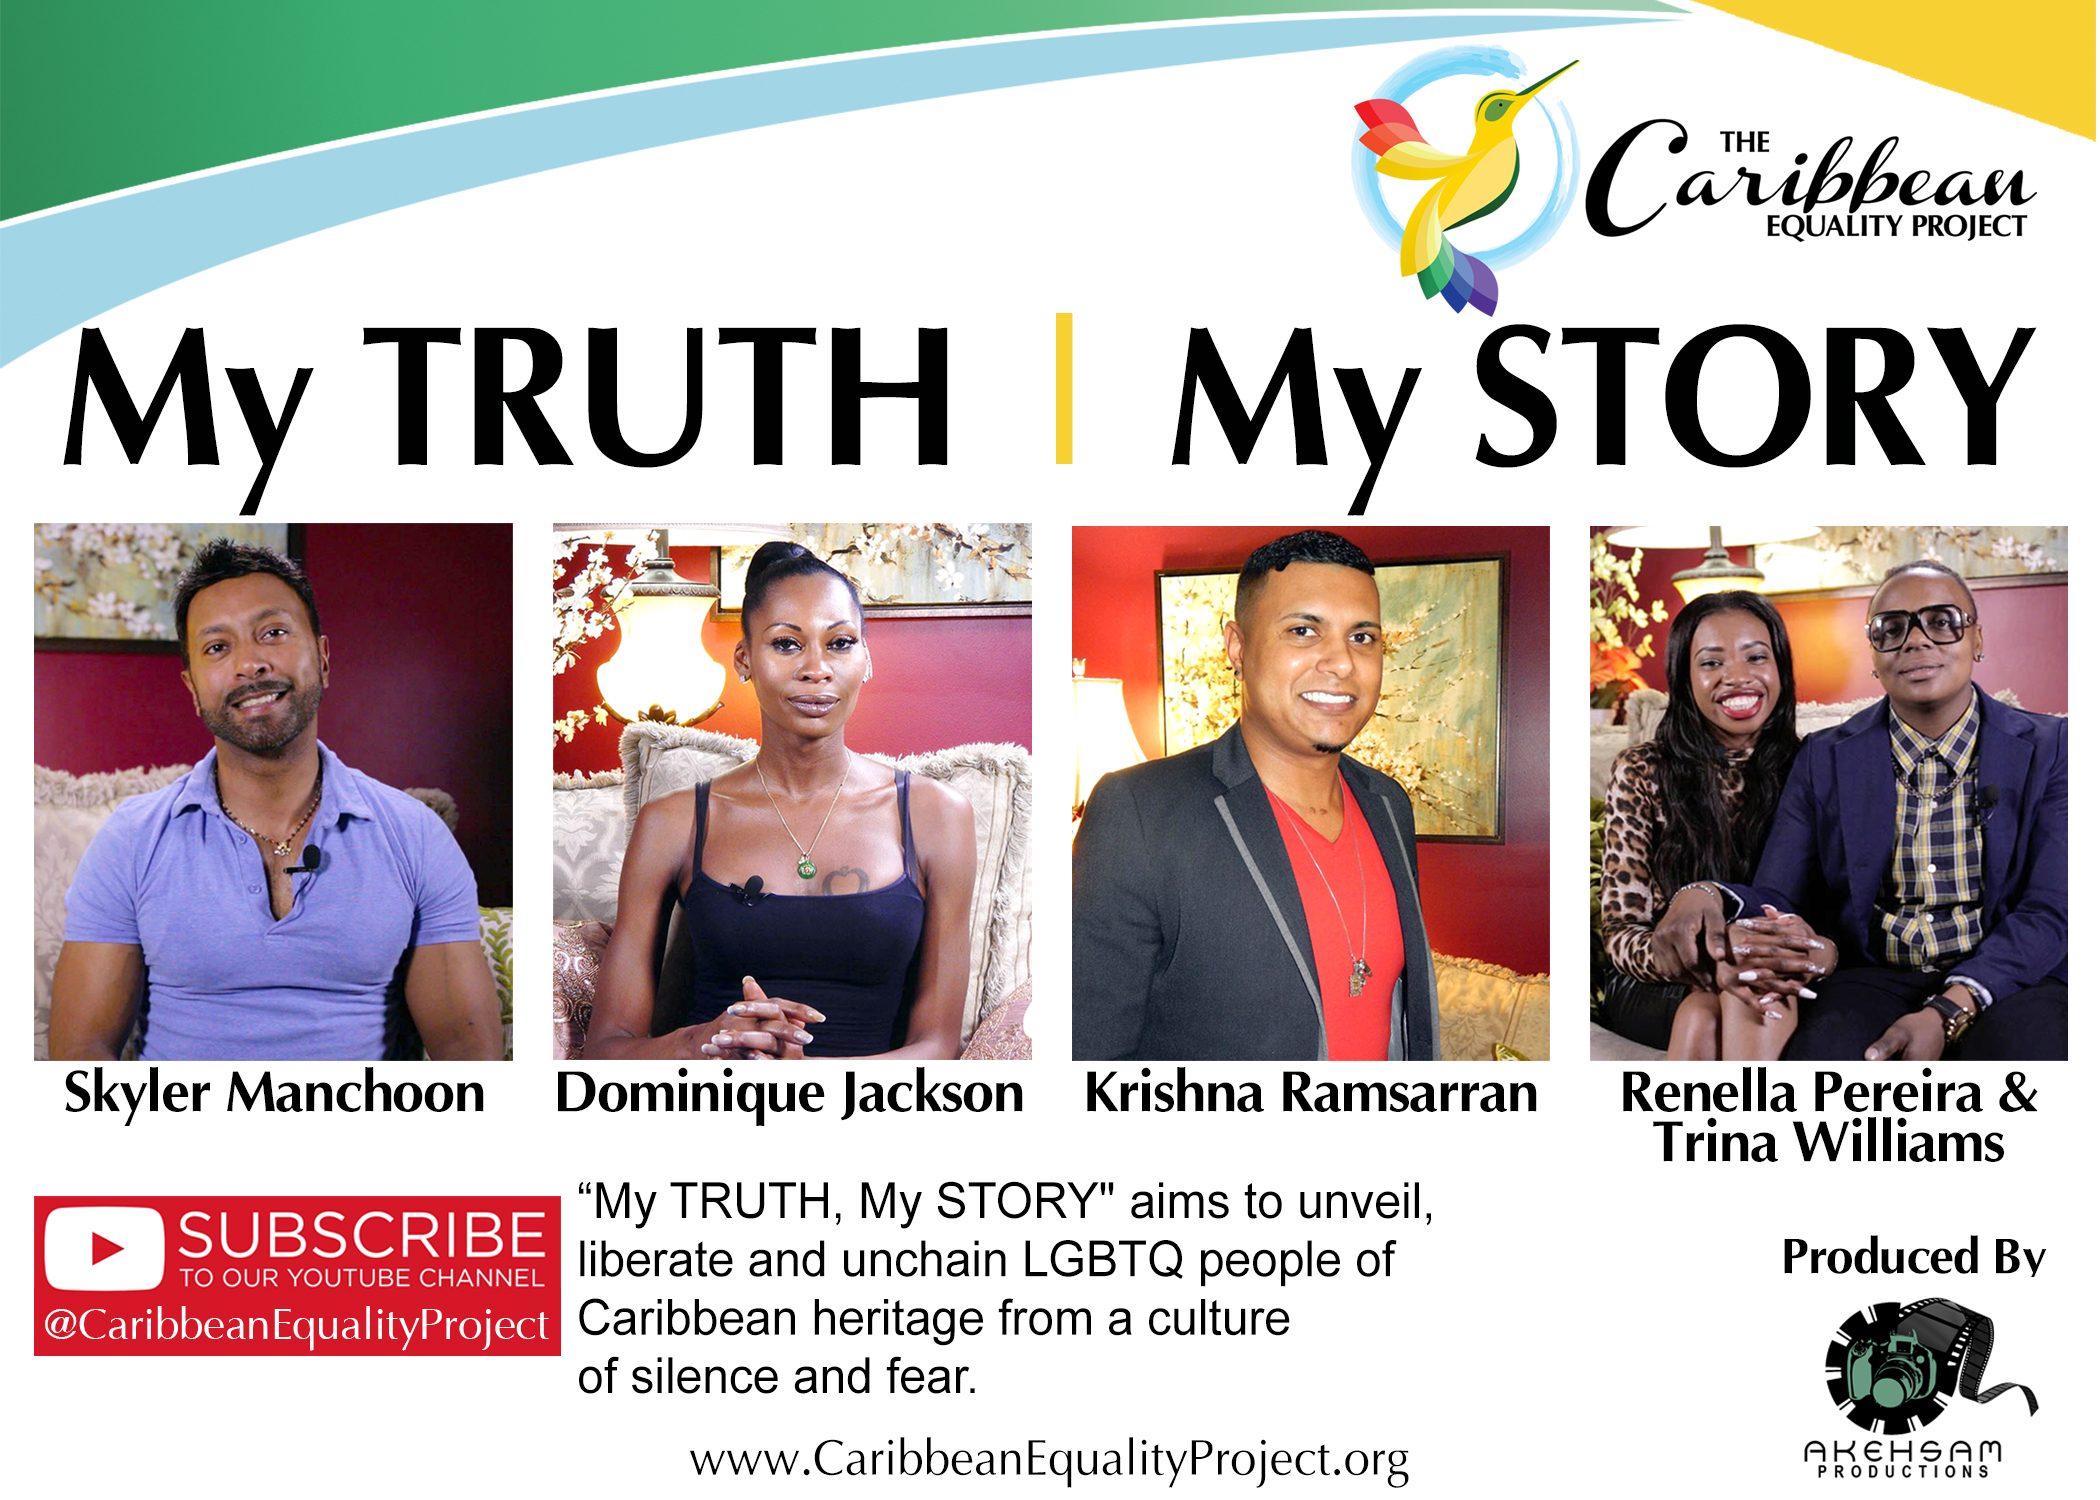 My TRUTH, My STORY - Produced by Caribbean Equality Project in Association with Akehsam ProductionsWritten and Directed by: Mohamed Q. AminVideographer & Editor: Masheka Joseph